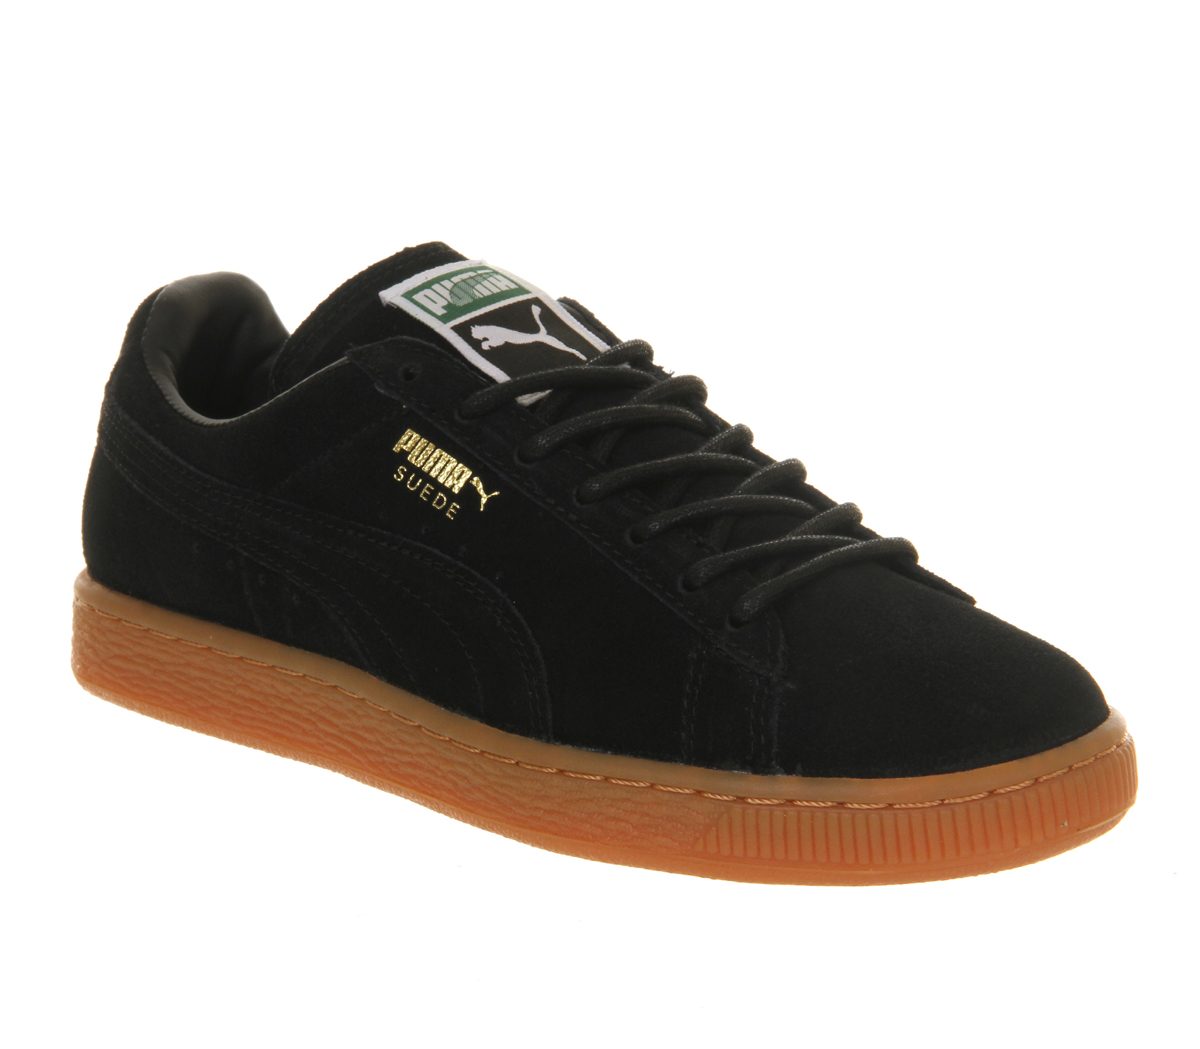 Buy suede blue pumas > OFF34% Discounts